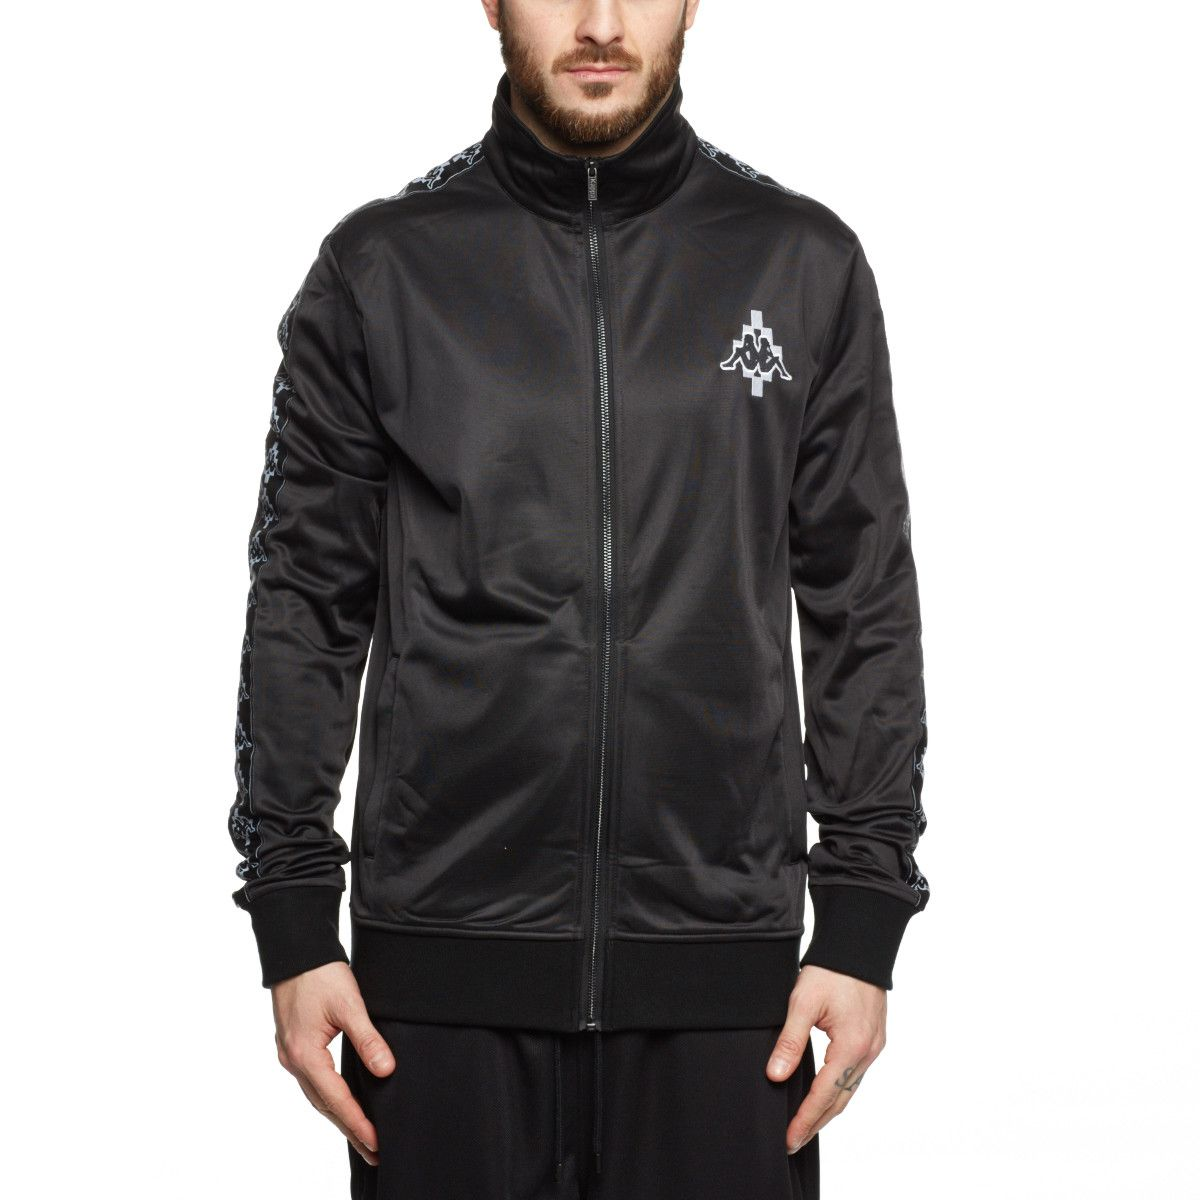 620a1e2def56a Kappa track jacket from the F W2017-18 Marcelo Burlon County of Milan  collection